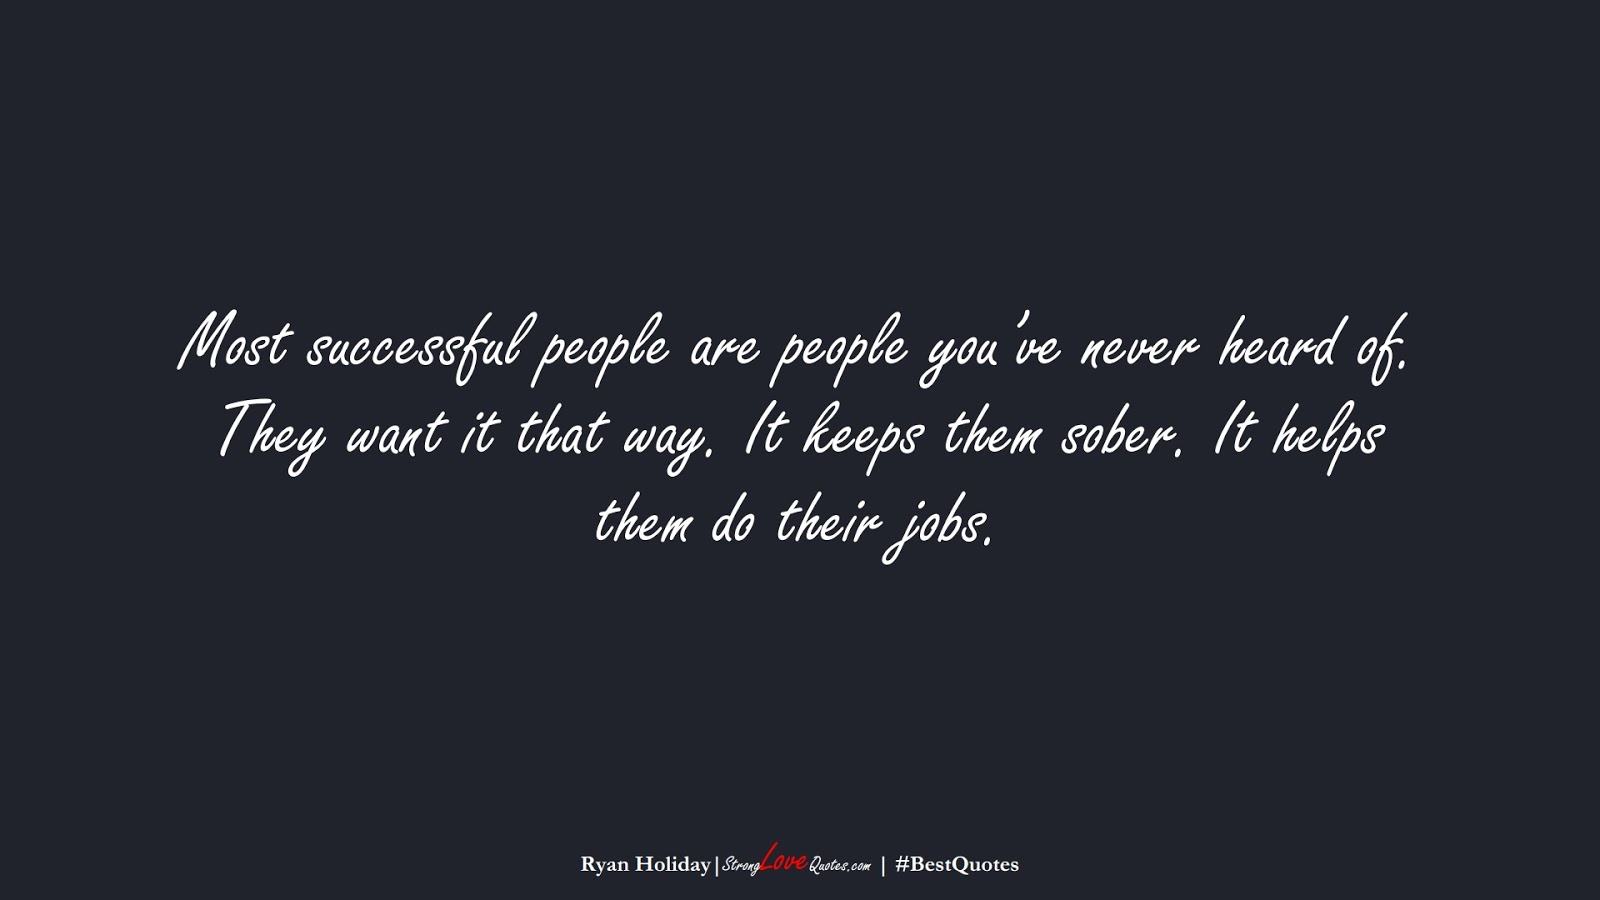 Most successful people are people you've never heard of. They want it that way. It keeps them sober. It helps them do their jobs. (Ryan Holiday);  #BestQuotes